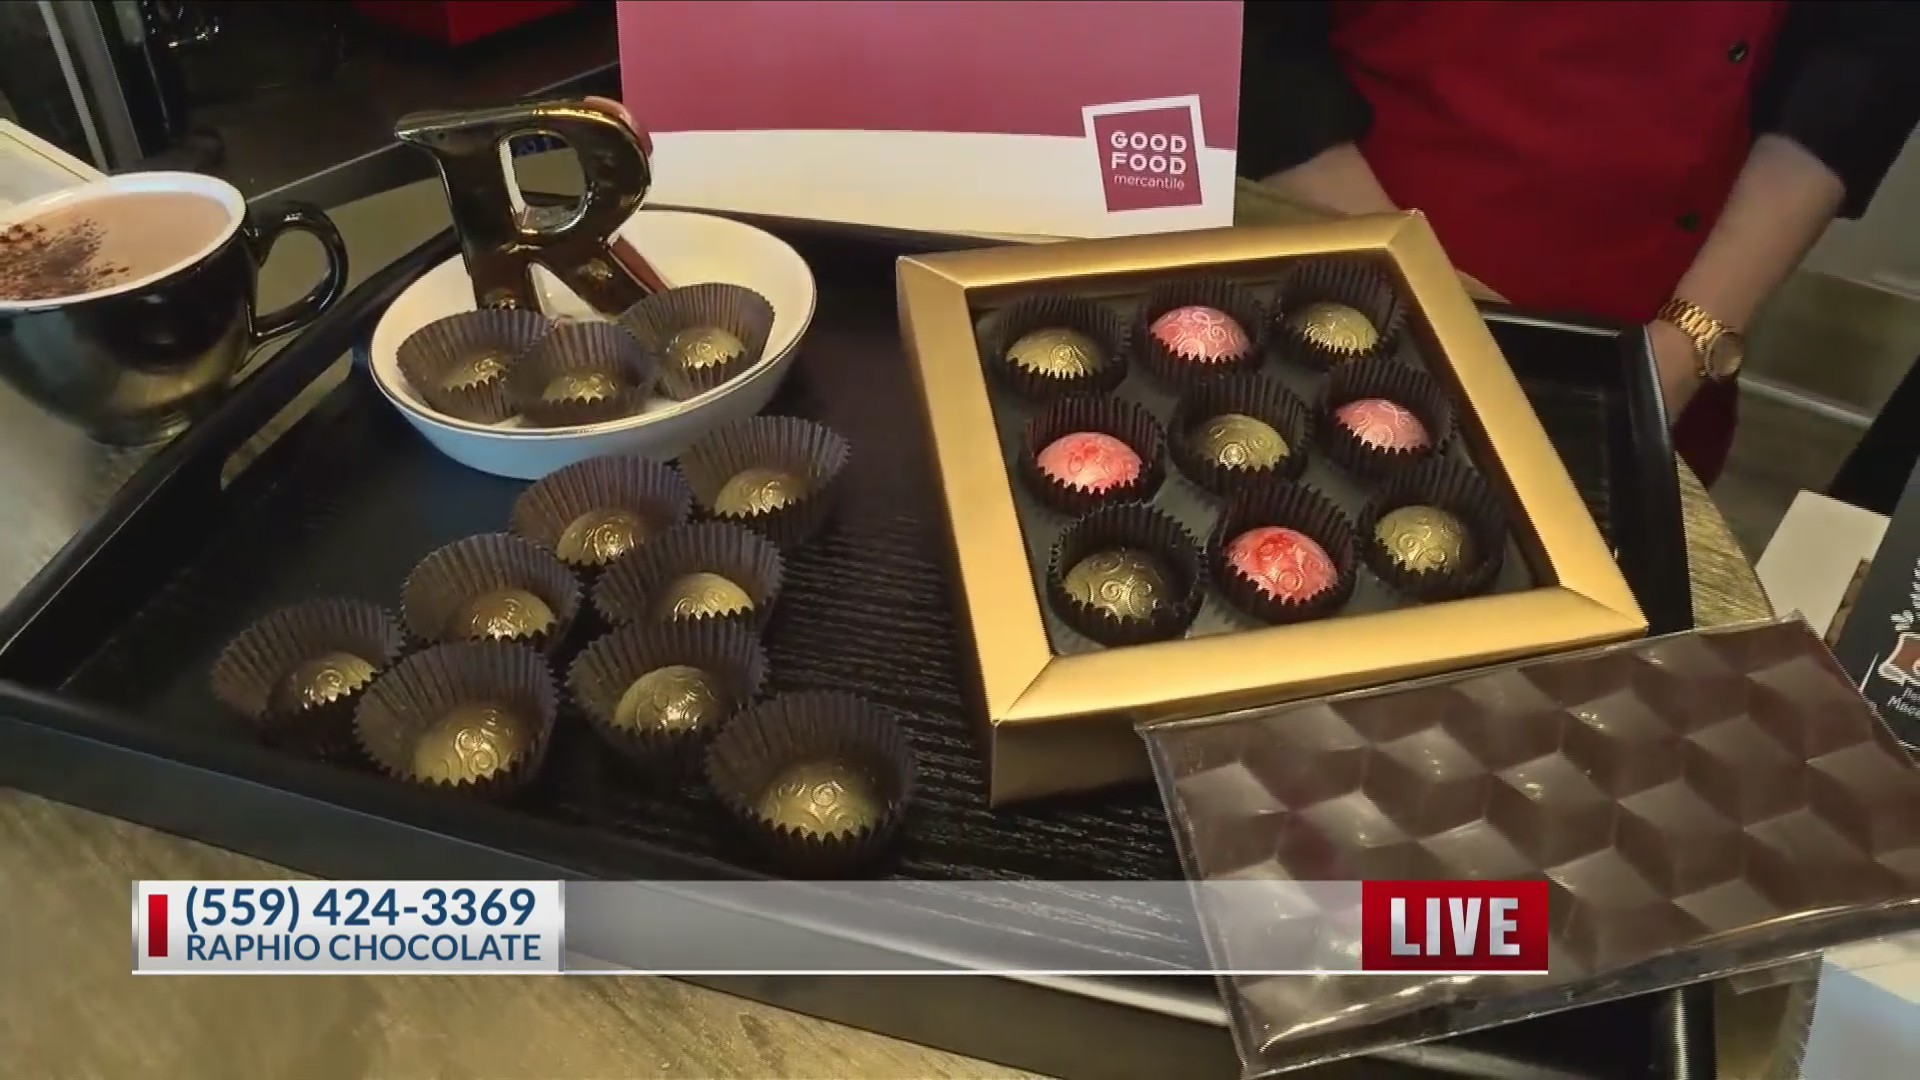 Locally owned and made, Raphio Chocolate brings bean to bar chocolate to Fresno